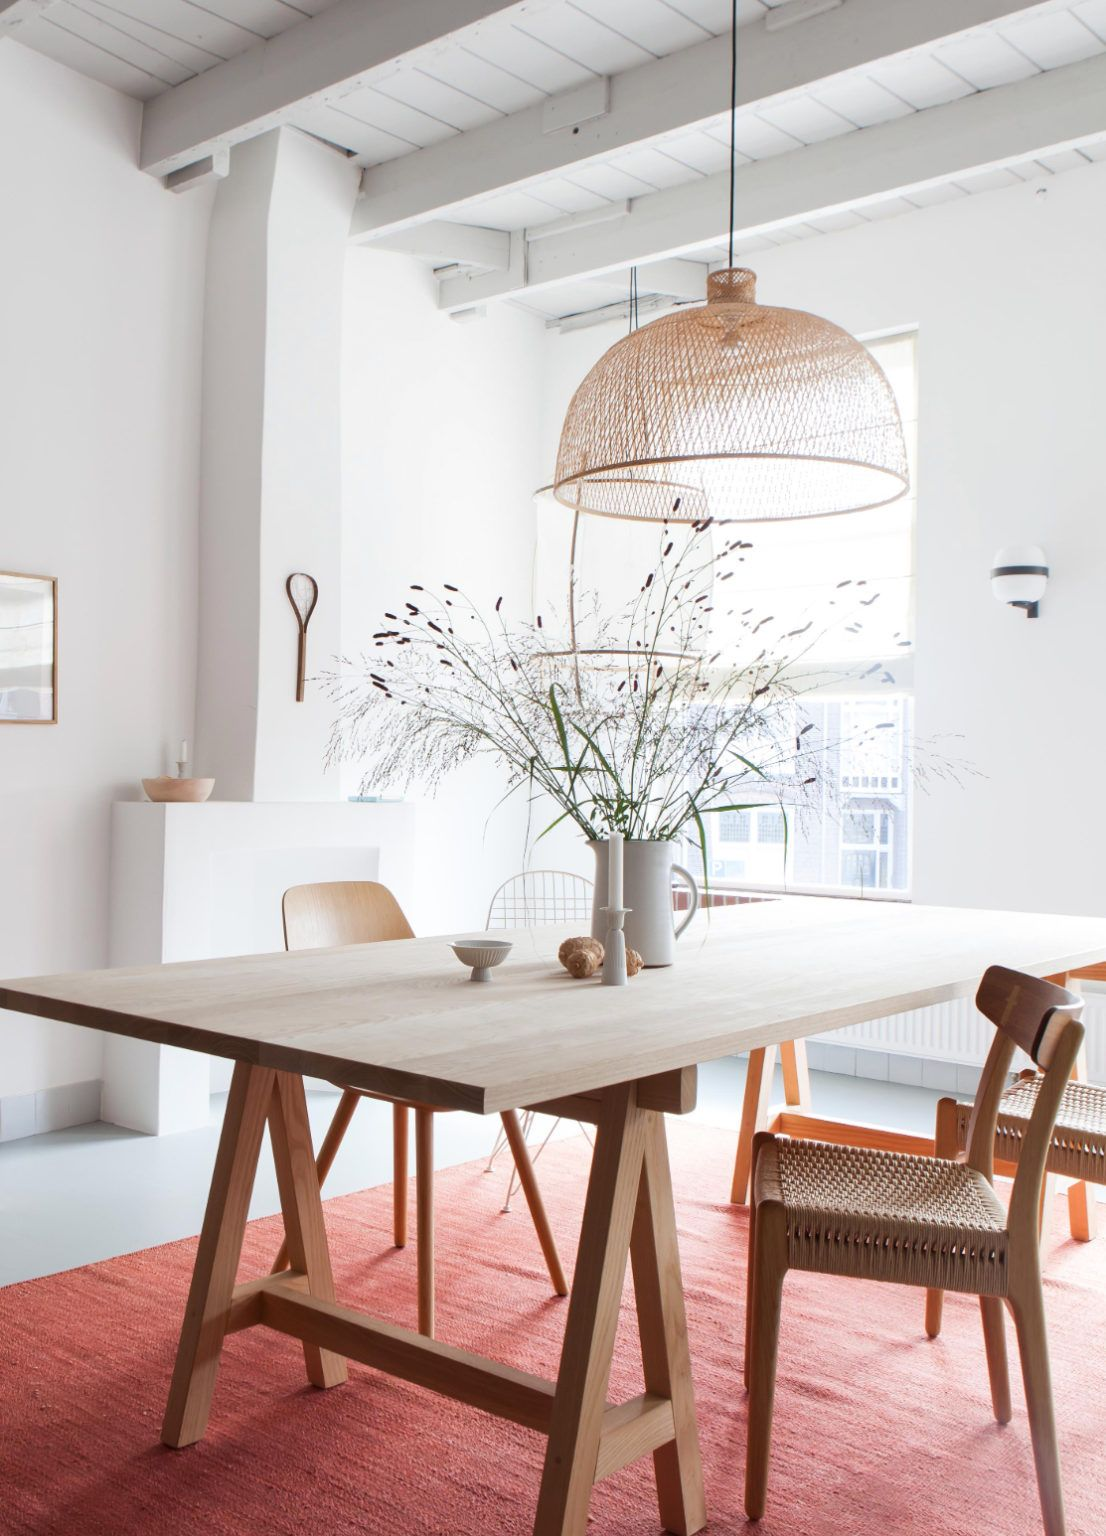 Scandinavian Inspired Interior With Sawhorse Dining Table Diningtable Sawhorse Saw In 2020 Scandinavian Dining Table Scandinavian Dining Room Dining Table Lighting